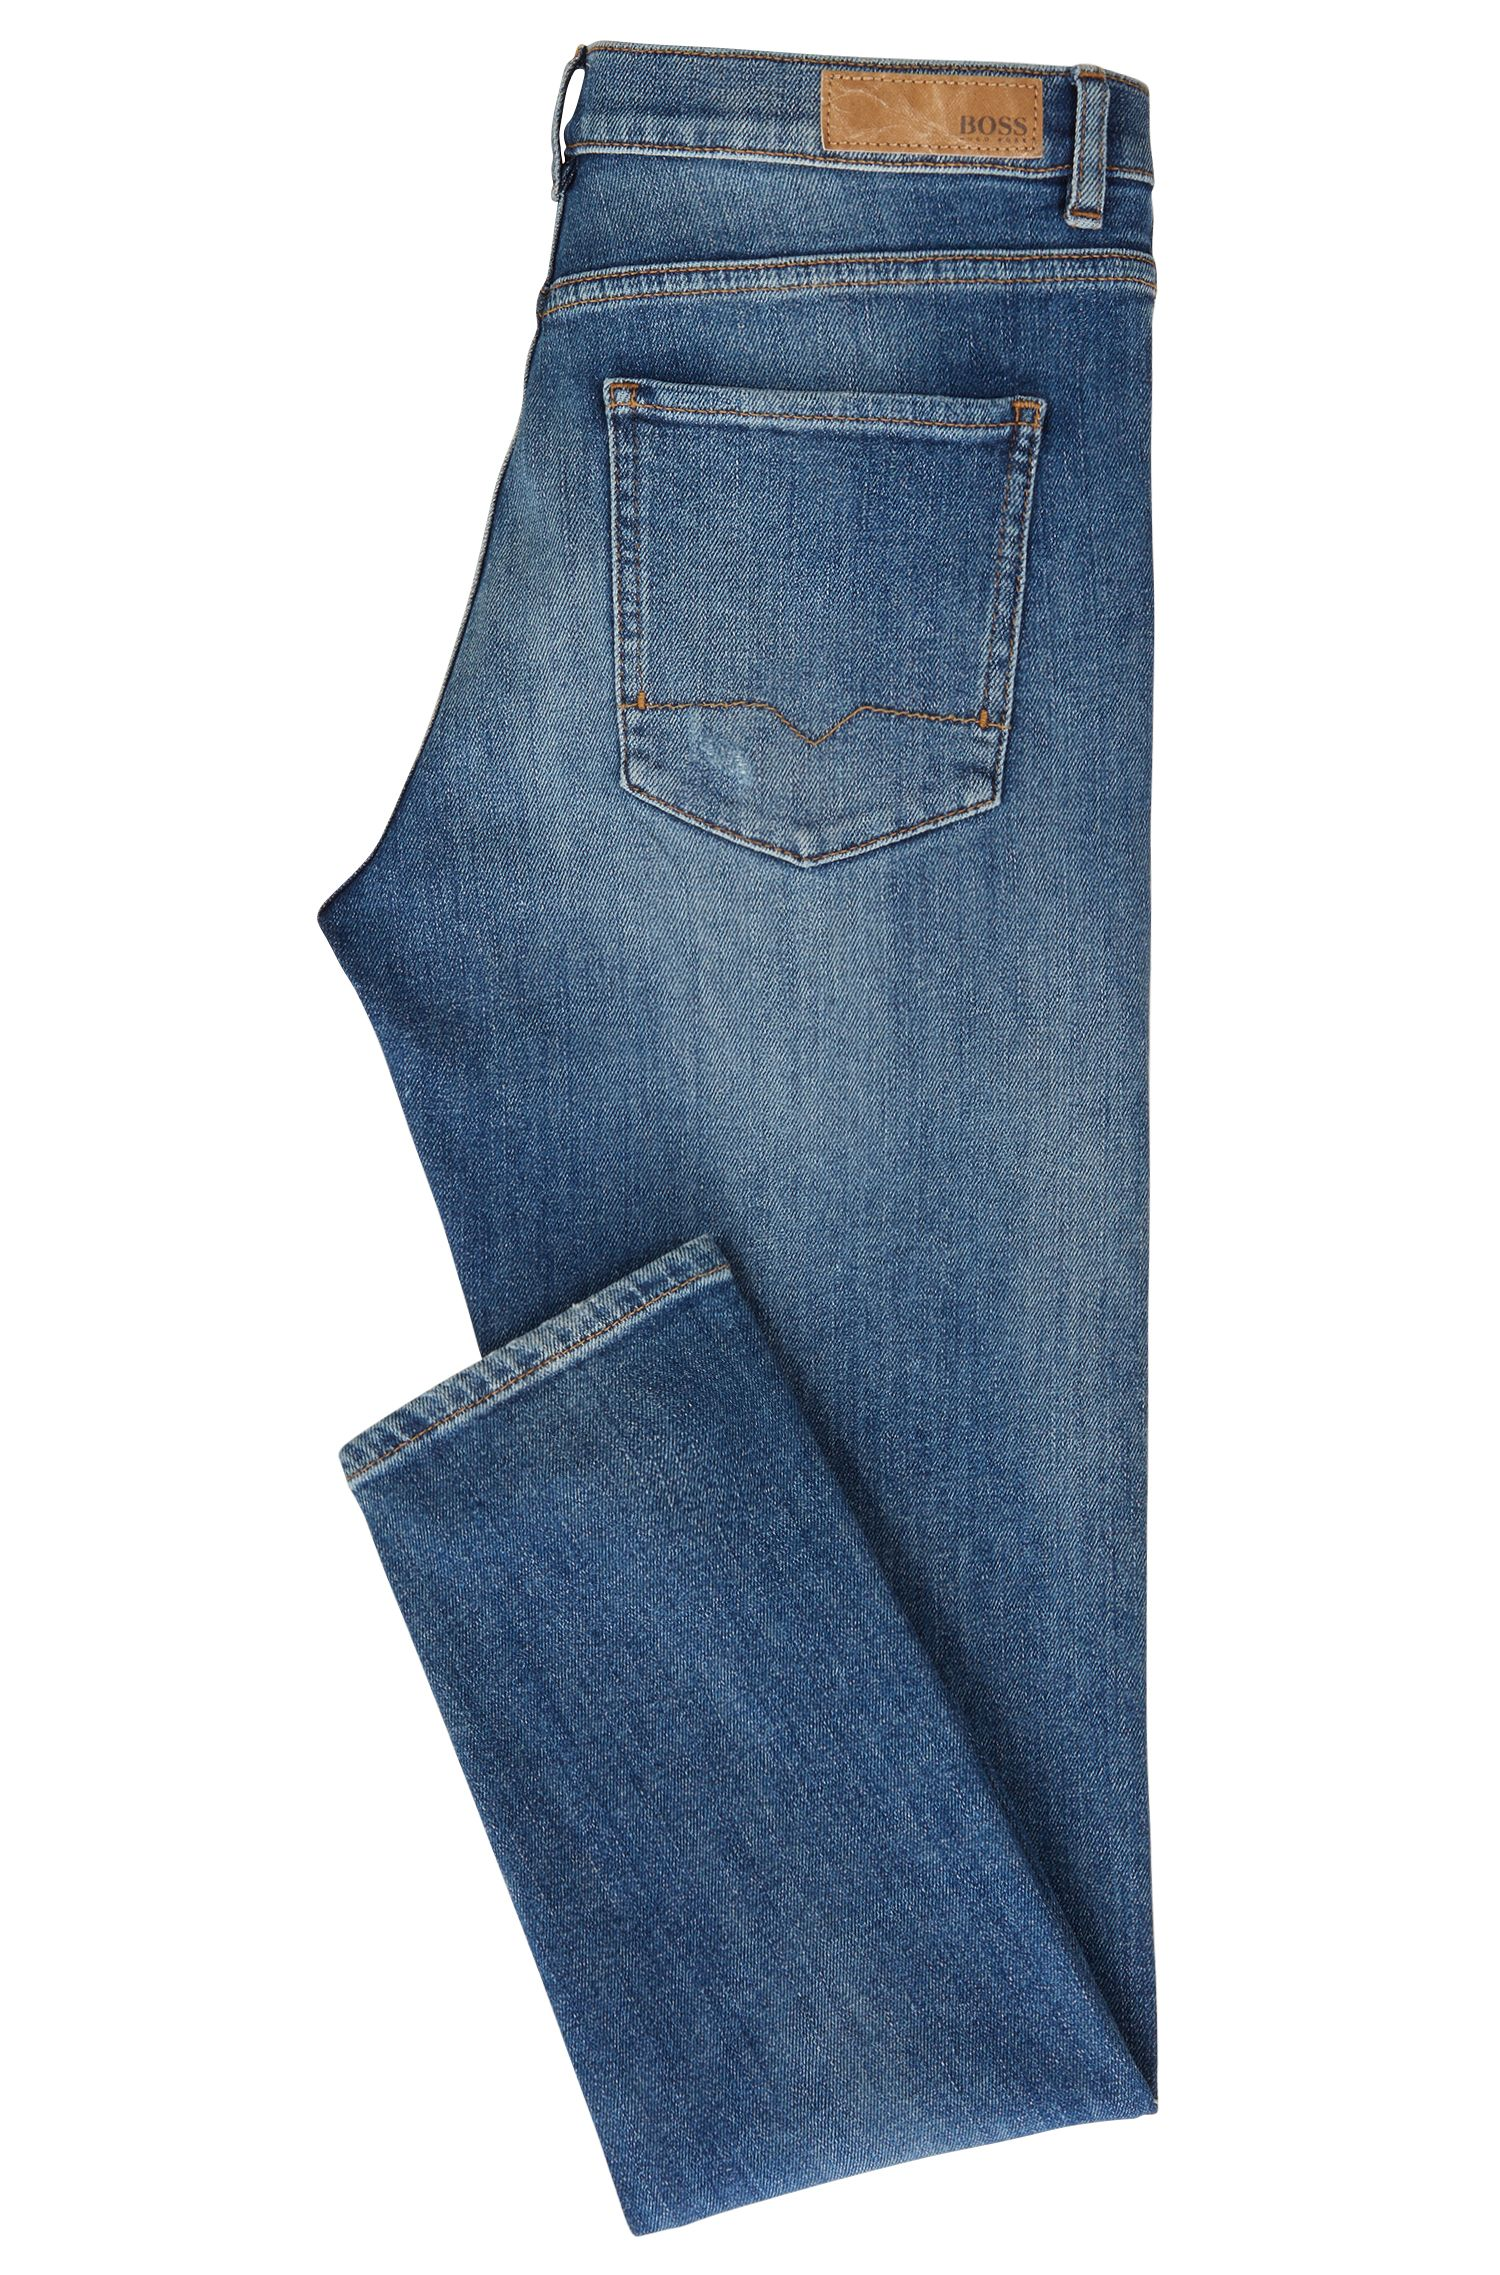 Slim-Fit Jeans aus komfortablem Stretch-Denim in Cropped-Länge, Blau